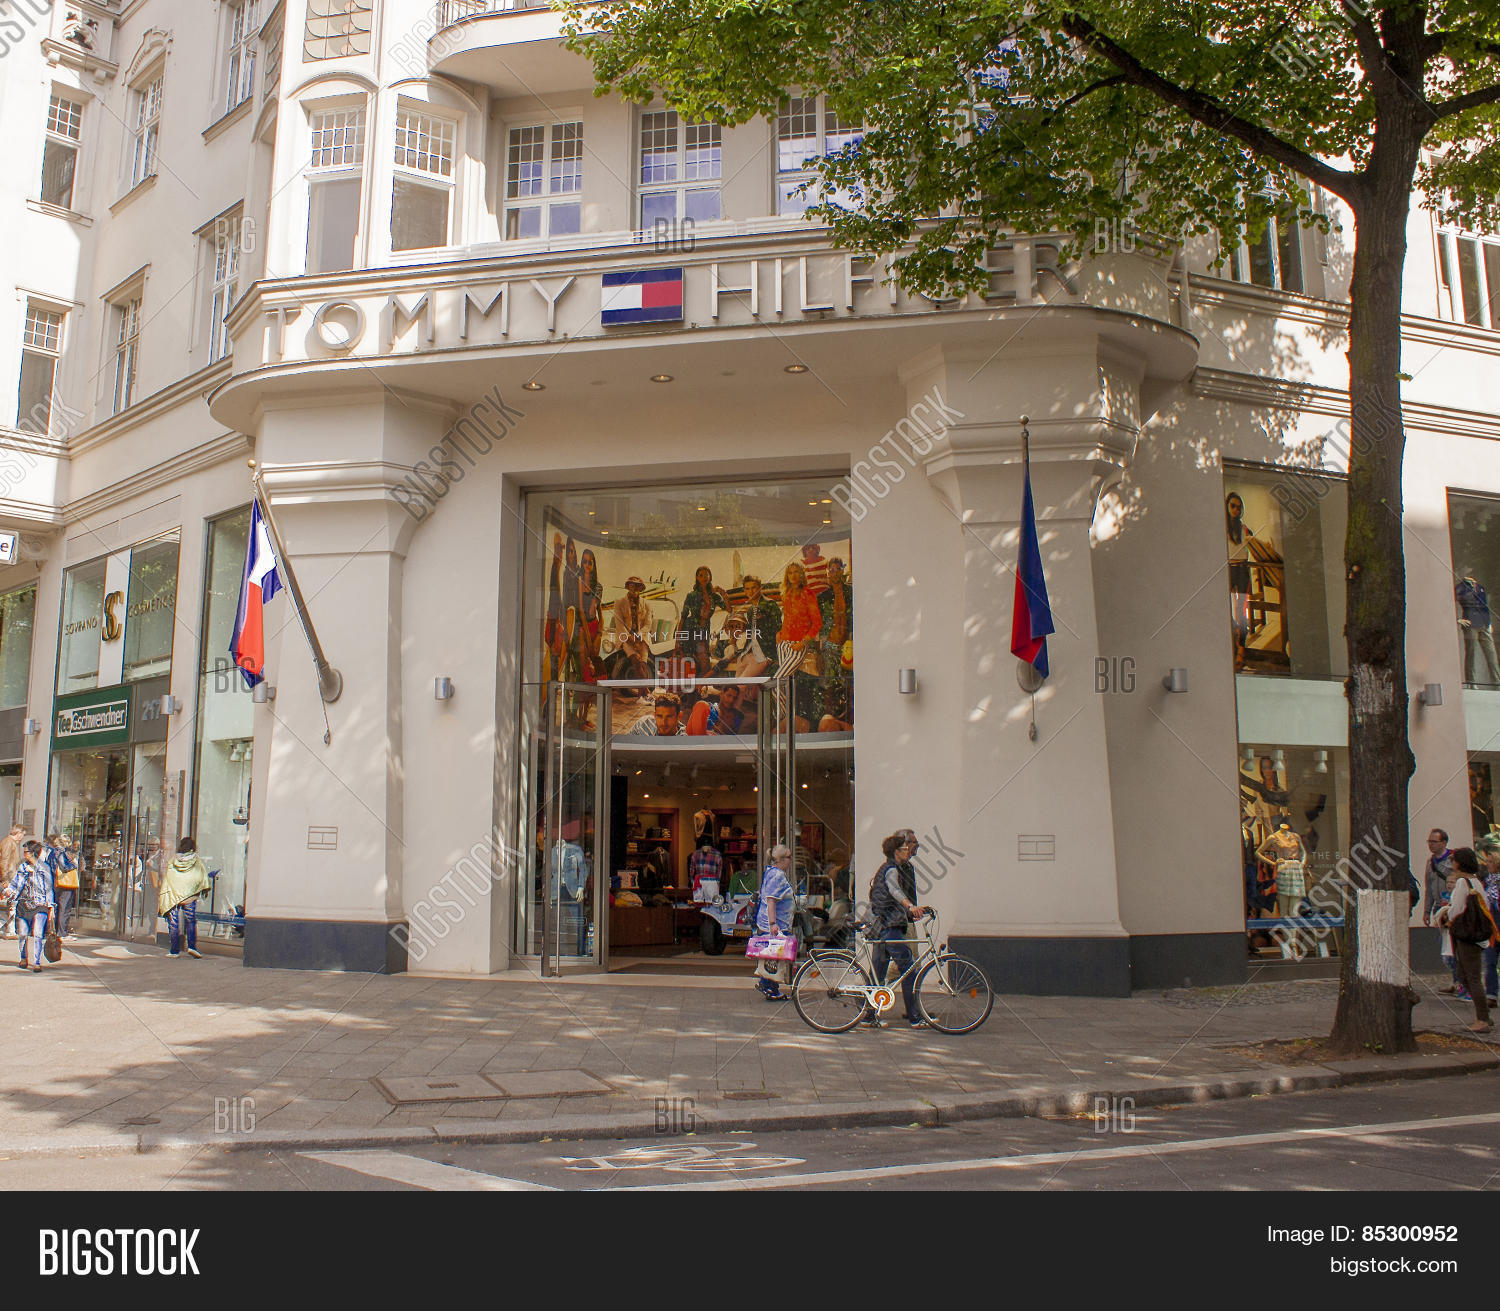 Tommy Hilfiger Store Image Photo Free Trial Bigstock